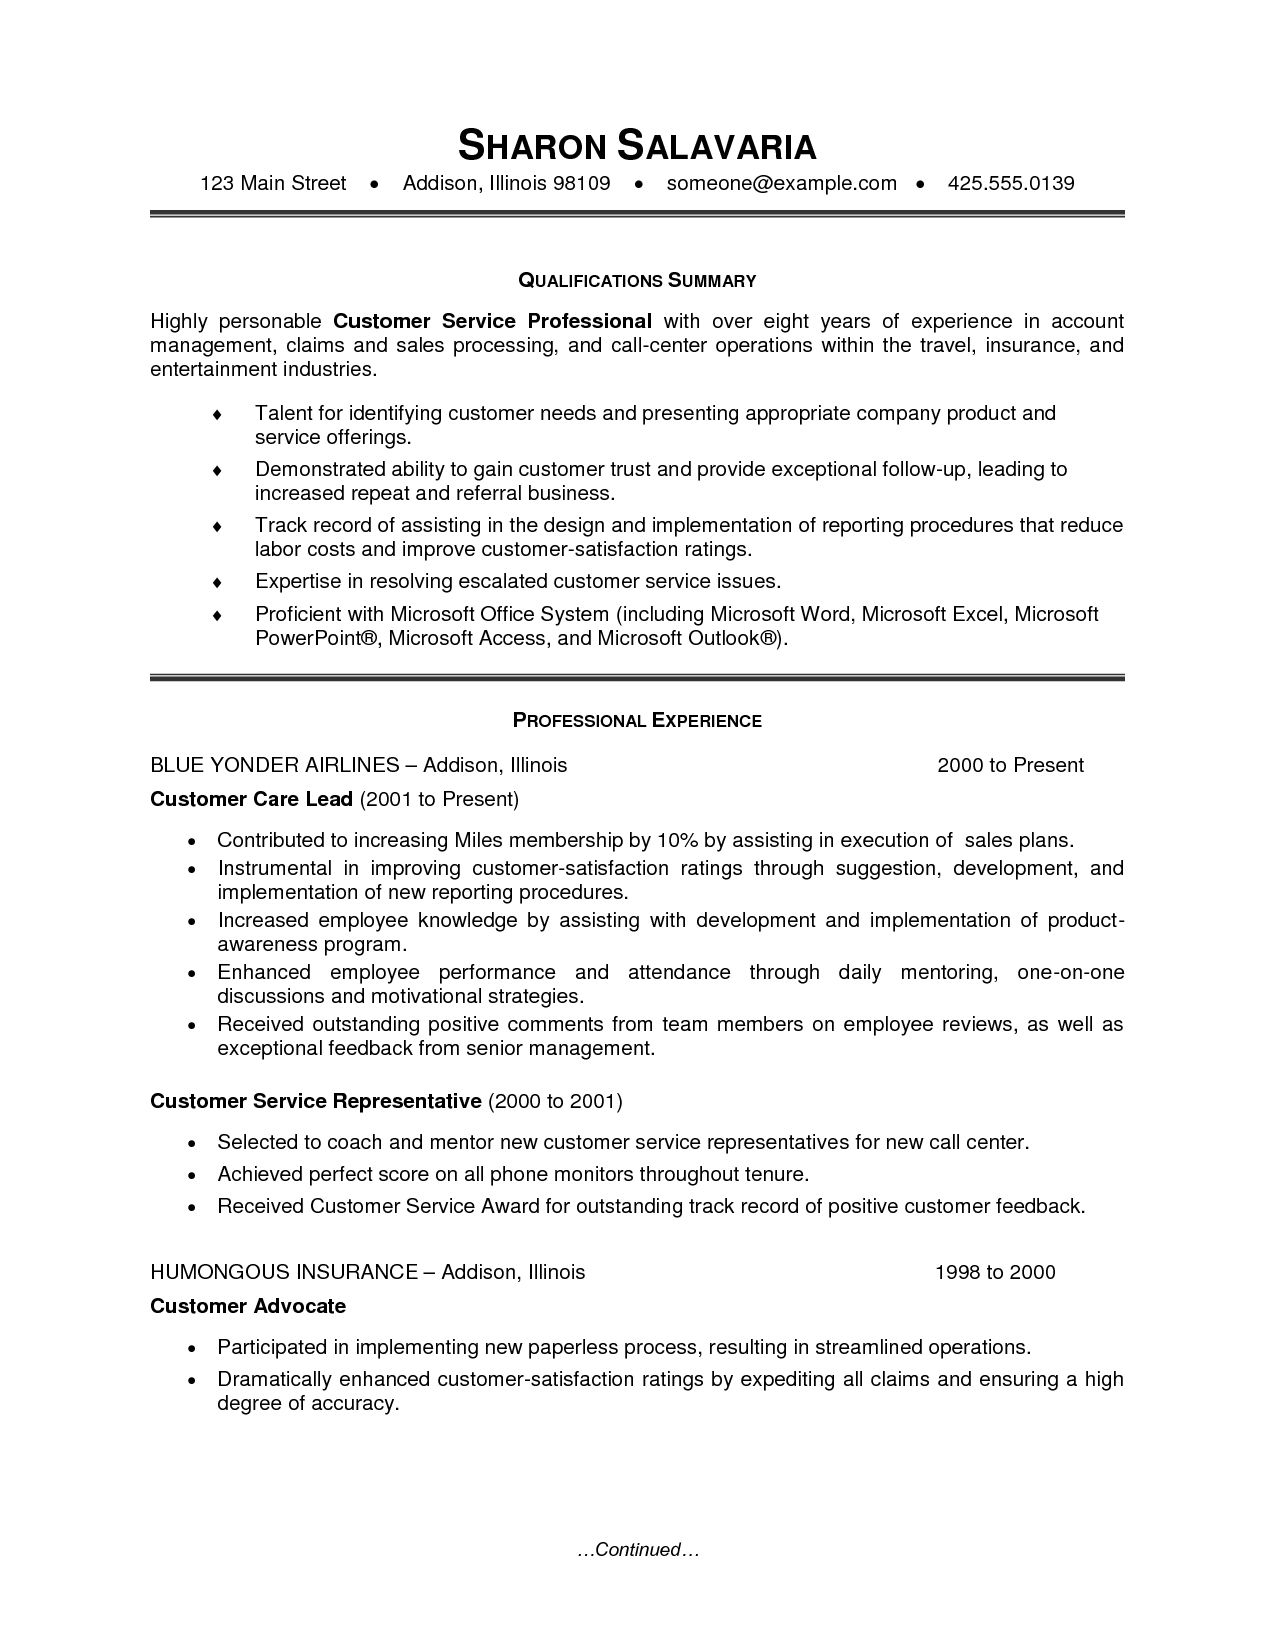 Resume Summary Example How To Write An Executive Summary For A Research Paperlearn How